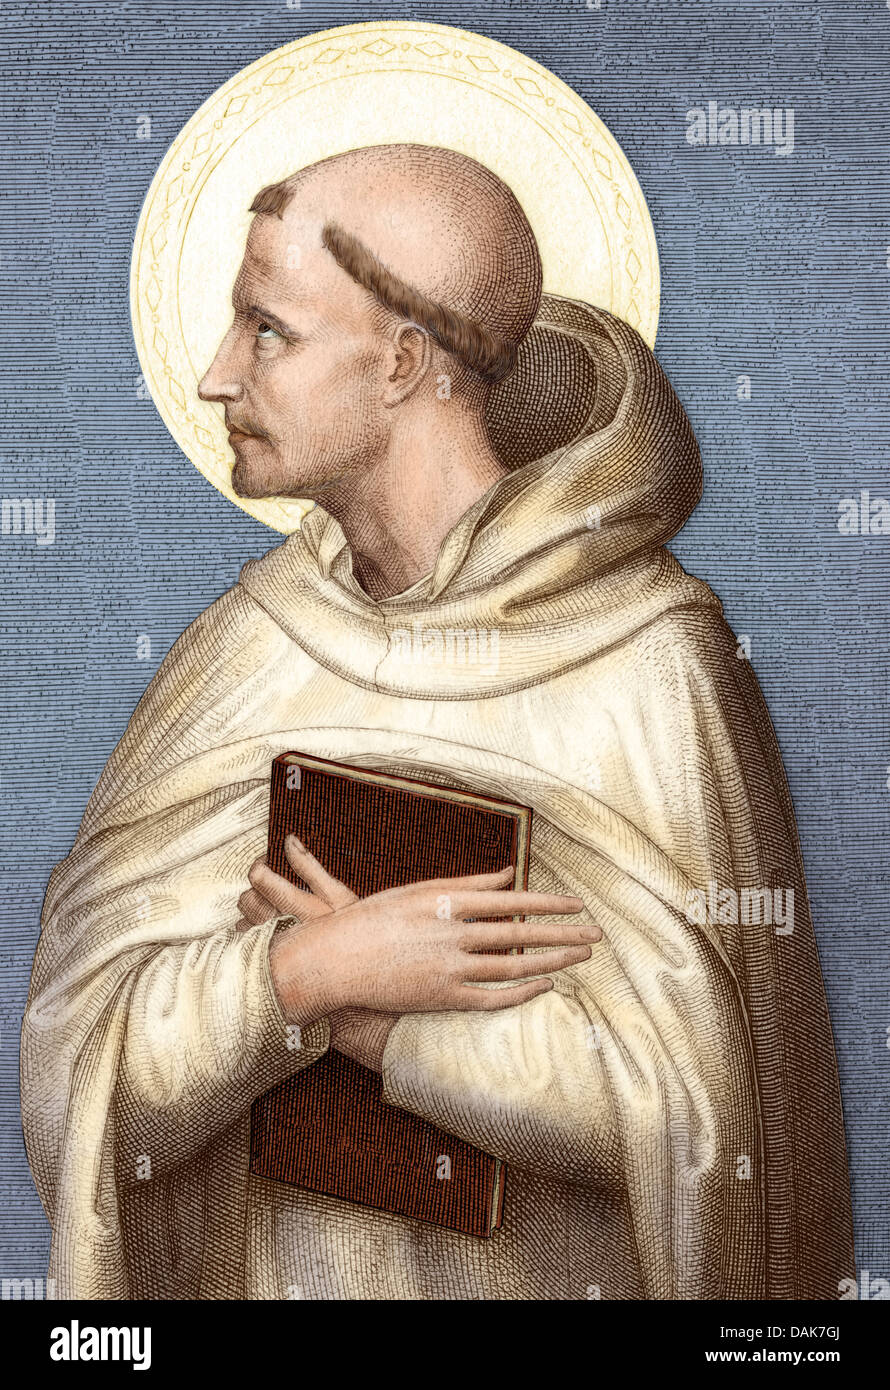 Saint Bernard of Clairvaux. Digitally colored engraving - Stock Image